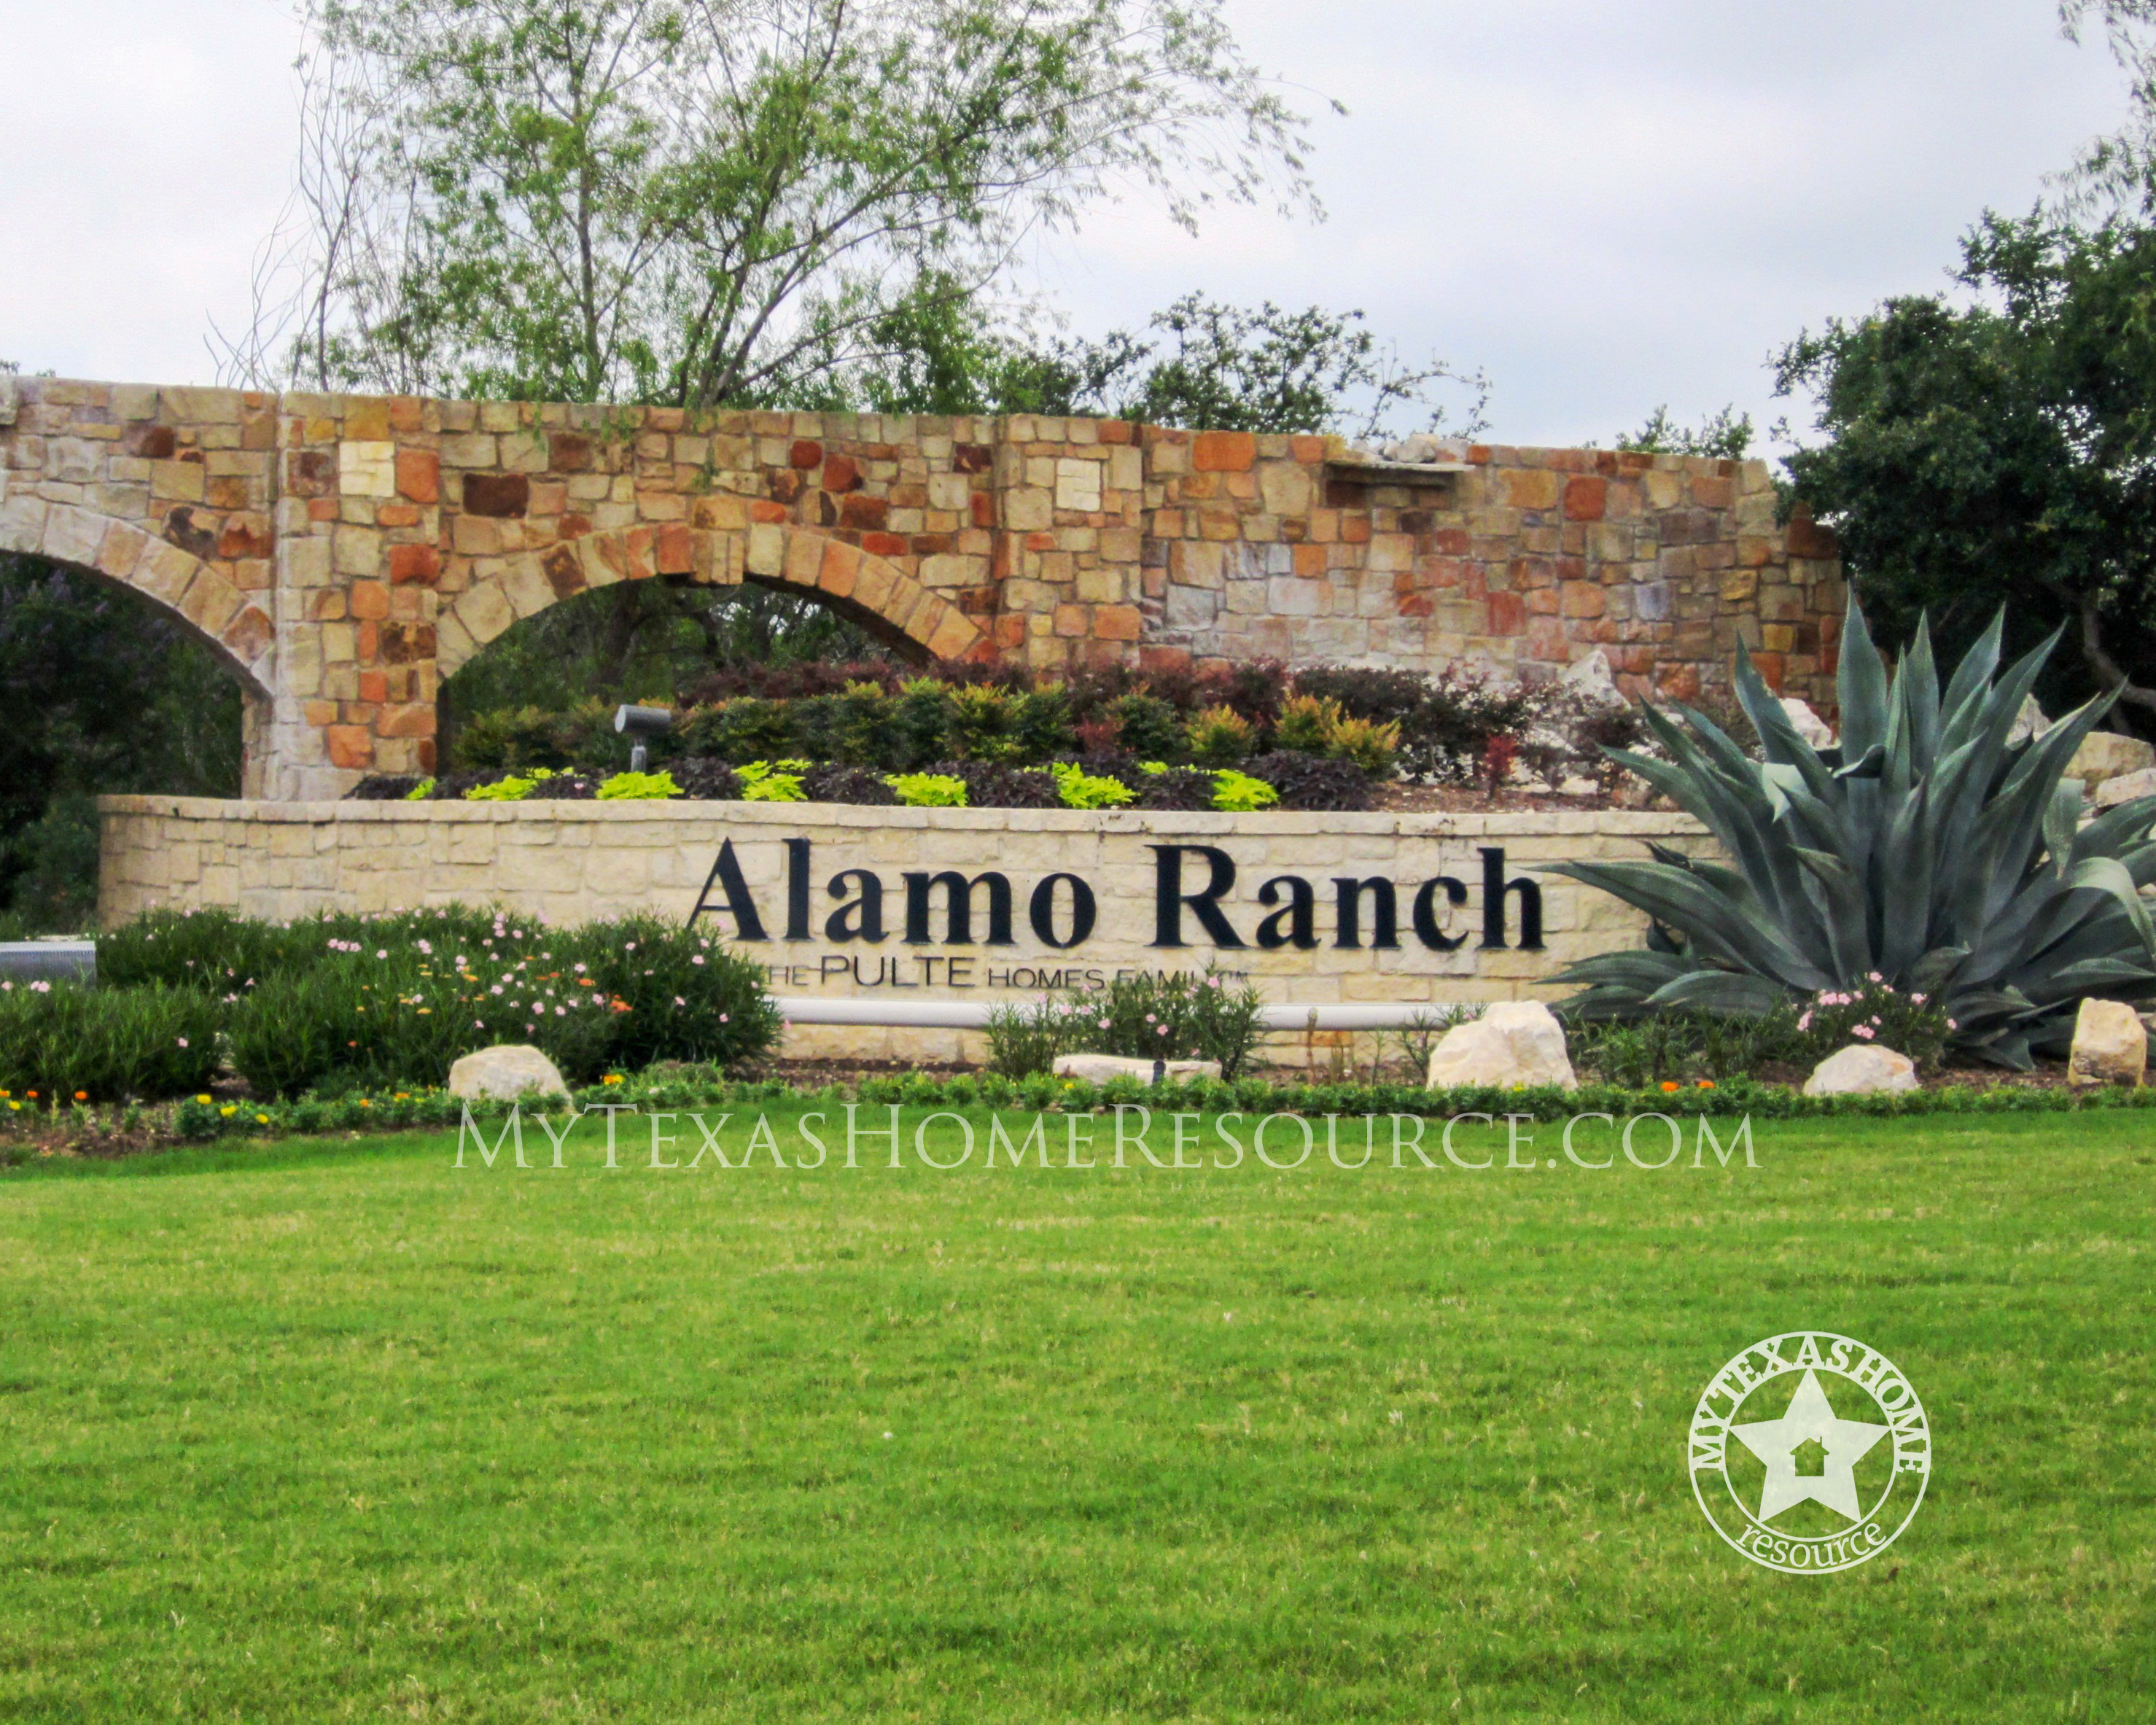 Alamo Ranch Community